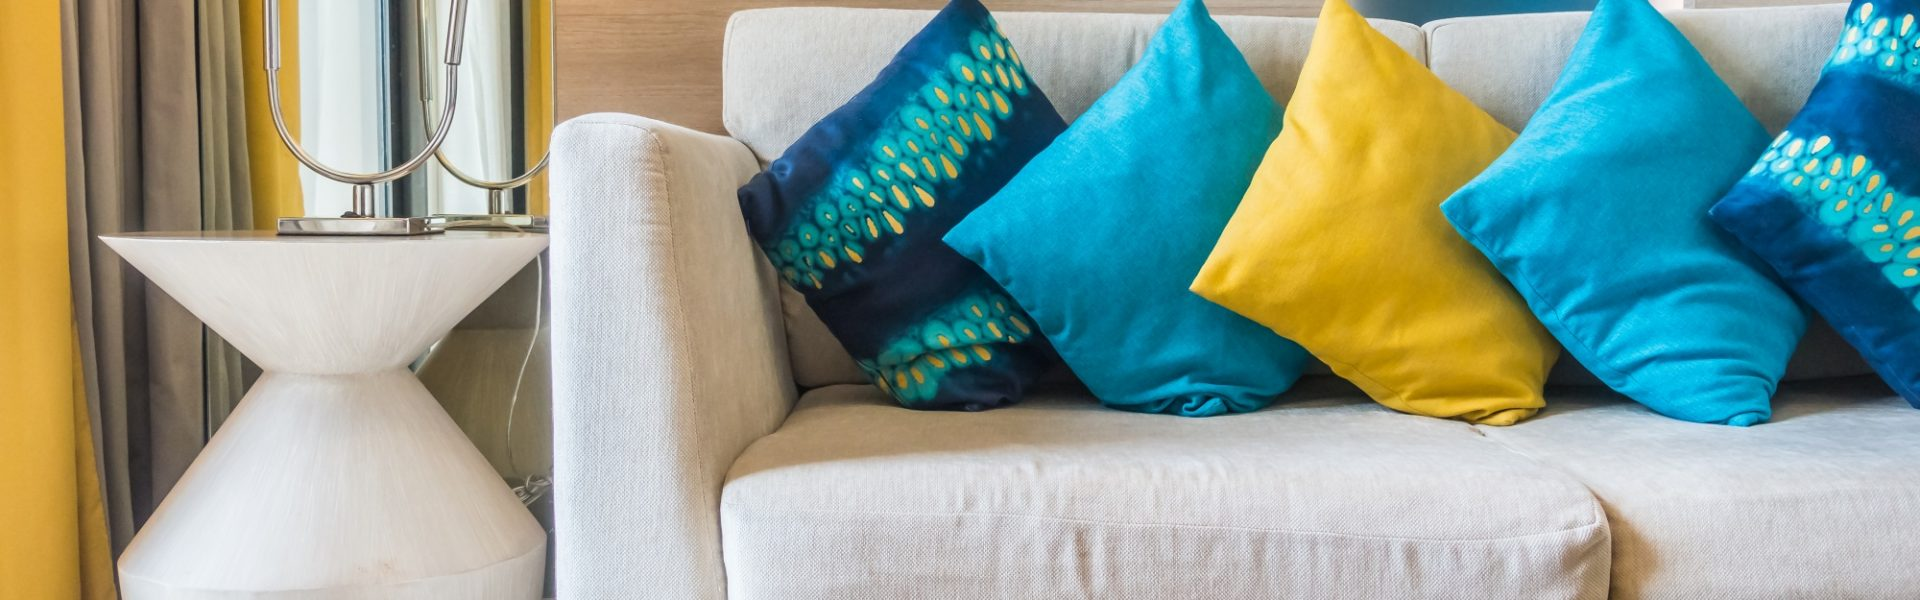 couch-with-colored-cushions